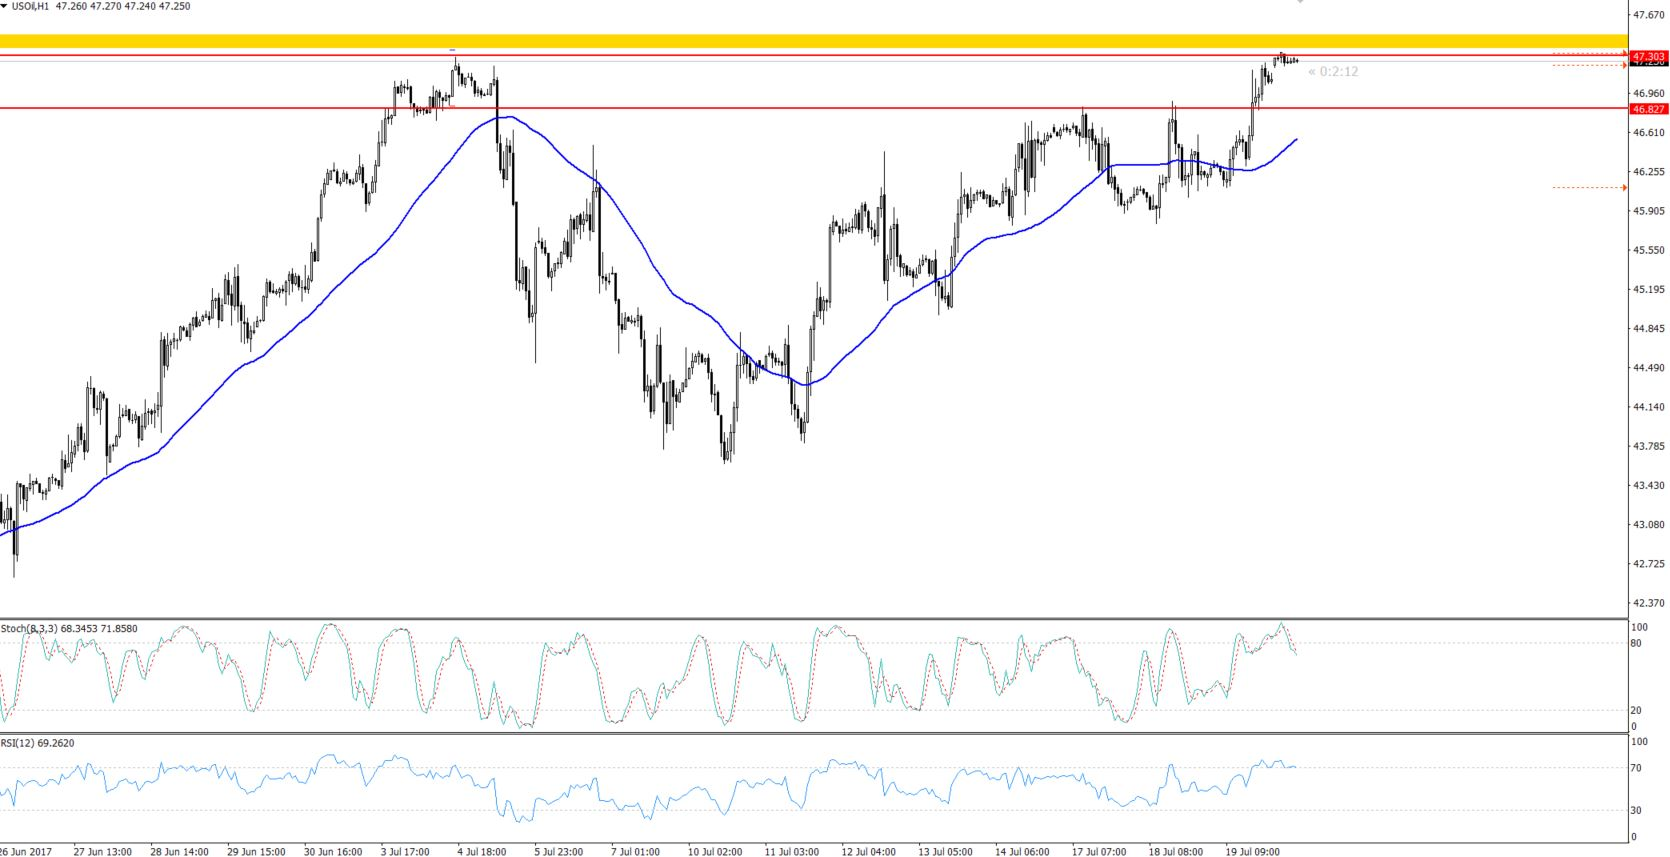 WTI Crude Oil  - Hourly Chart - Double Top